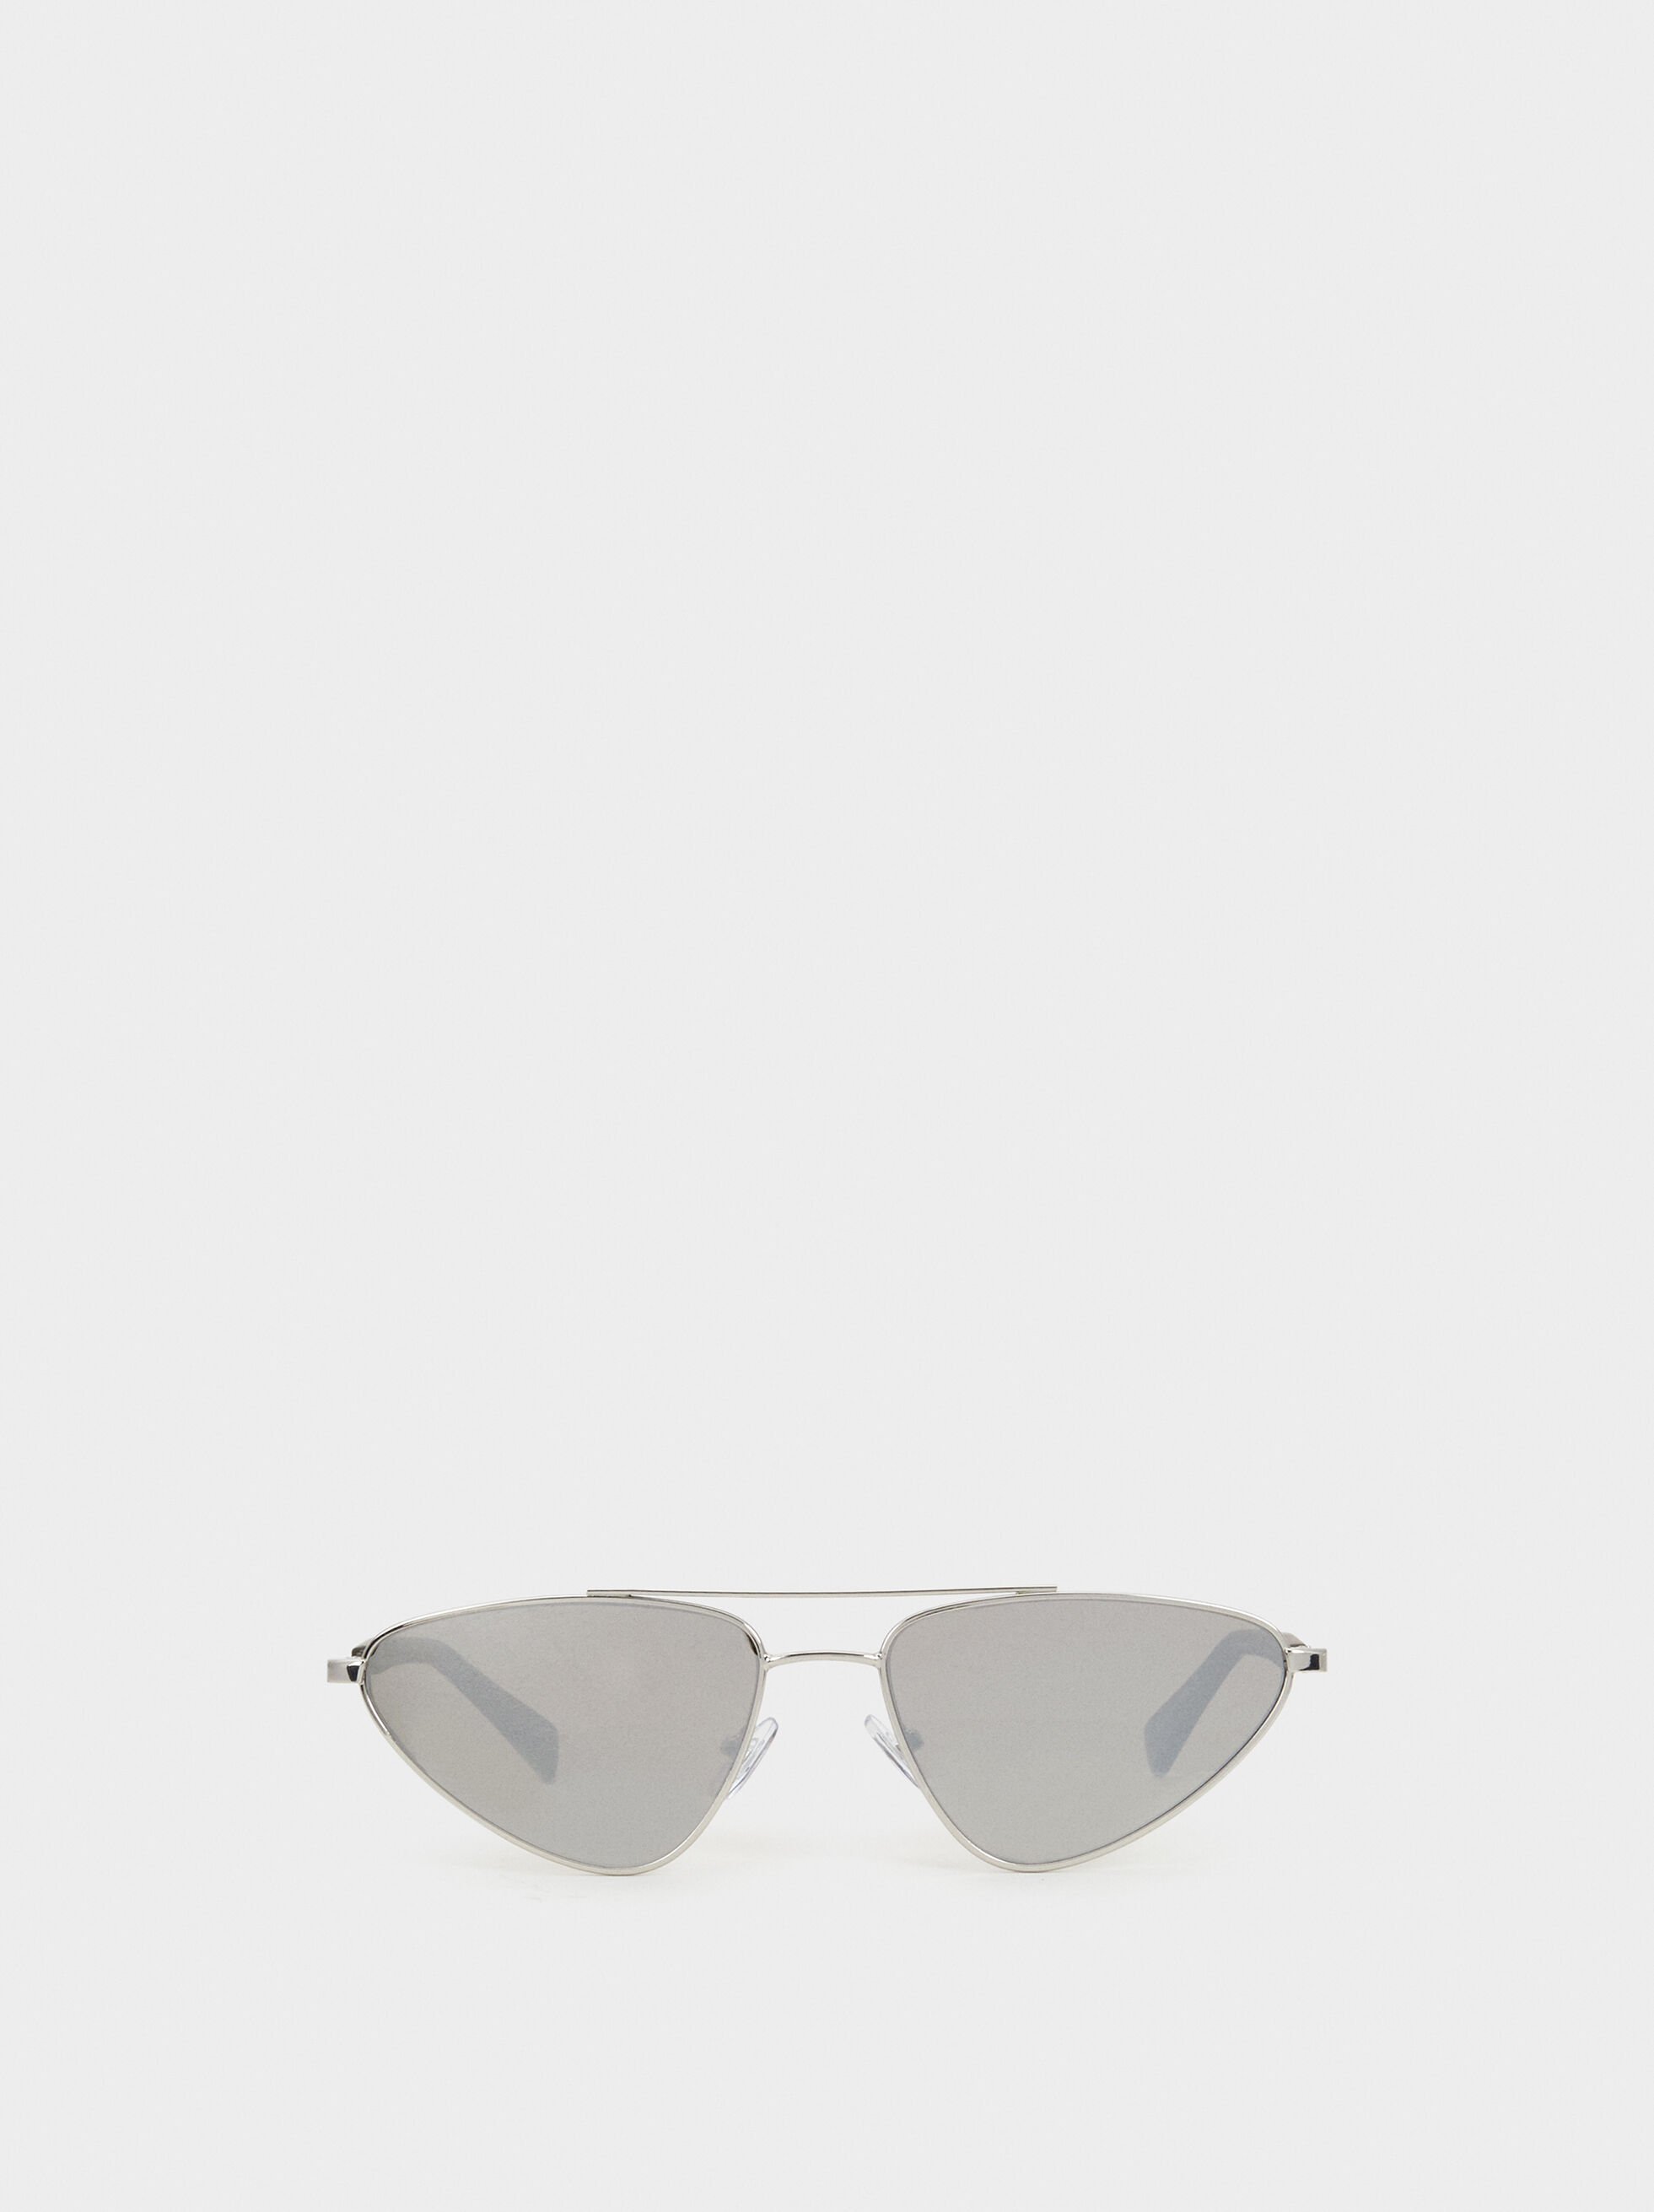 Here And Now Sunglasses, Silver, hi-res